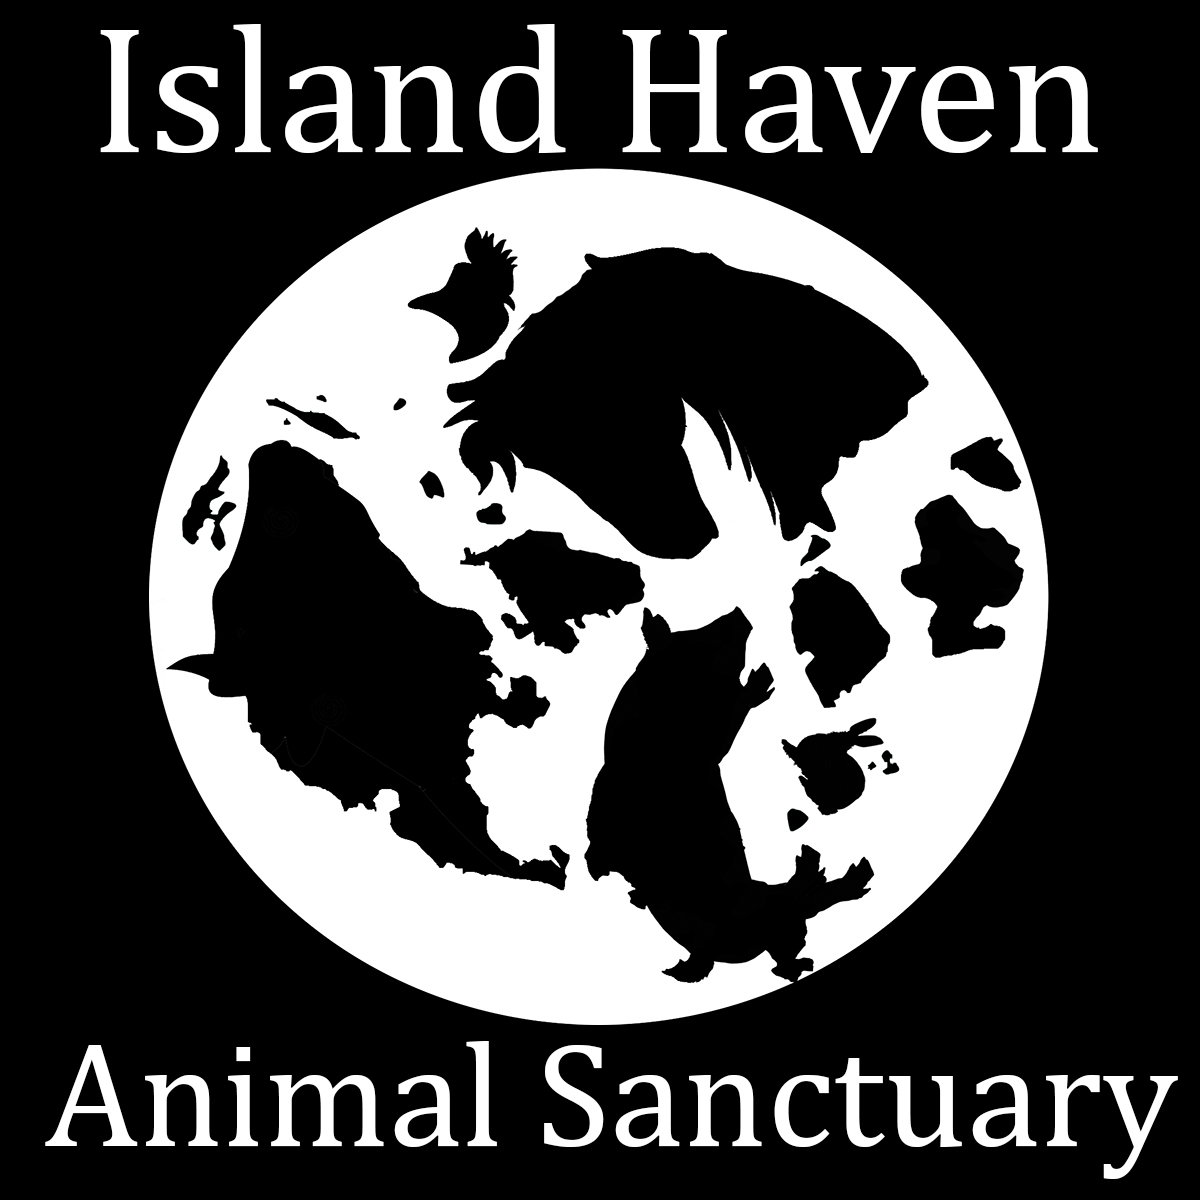 Island Haven Animal Sanctuary